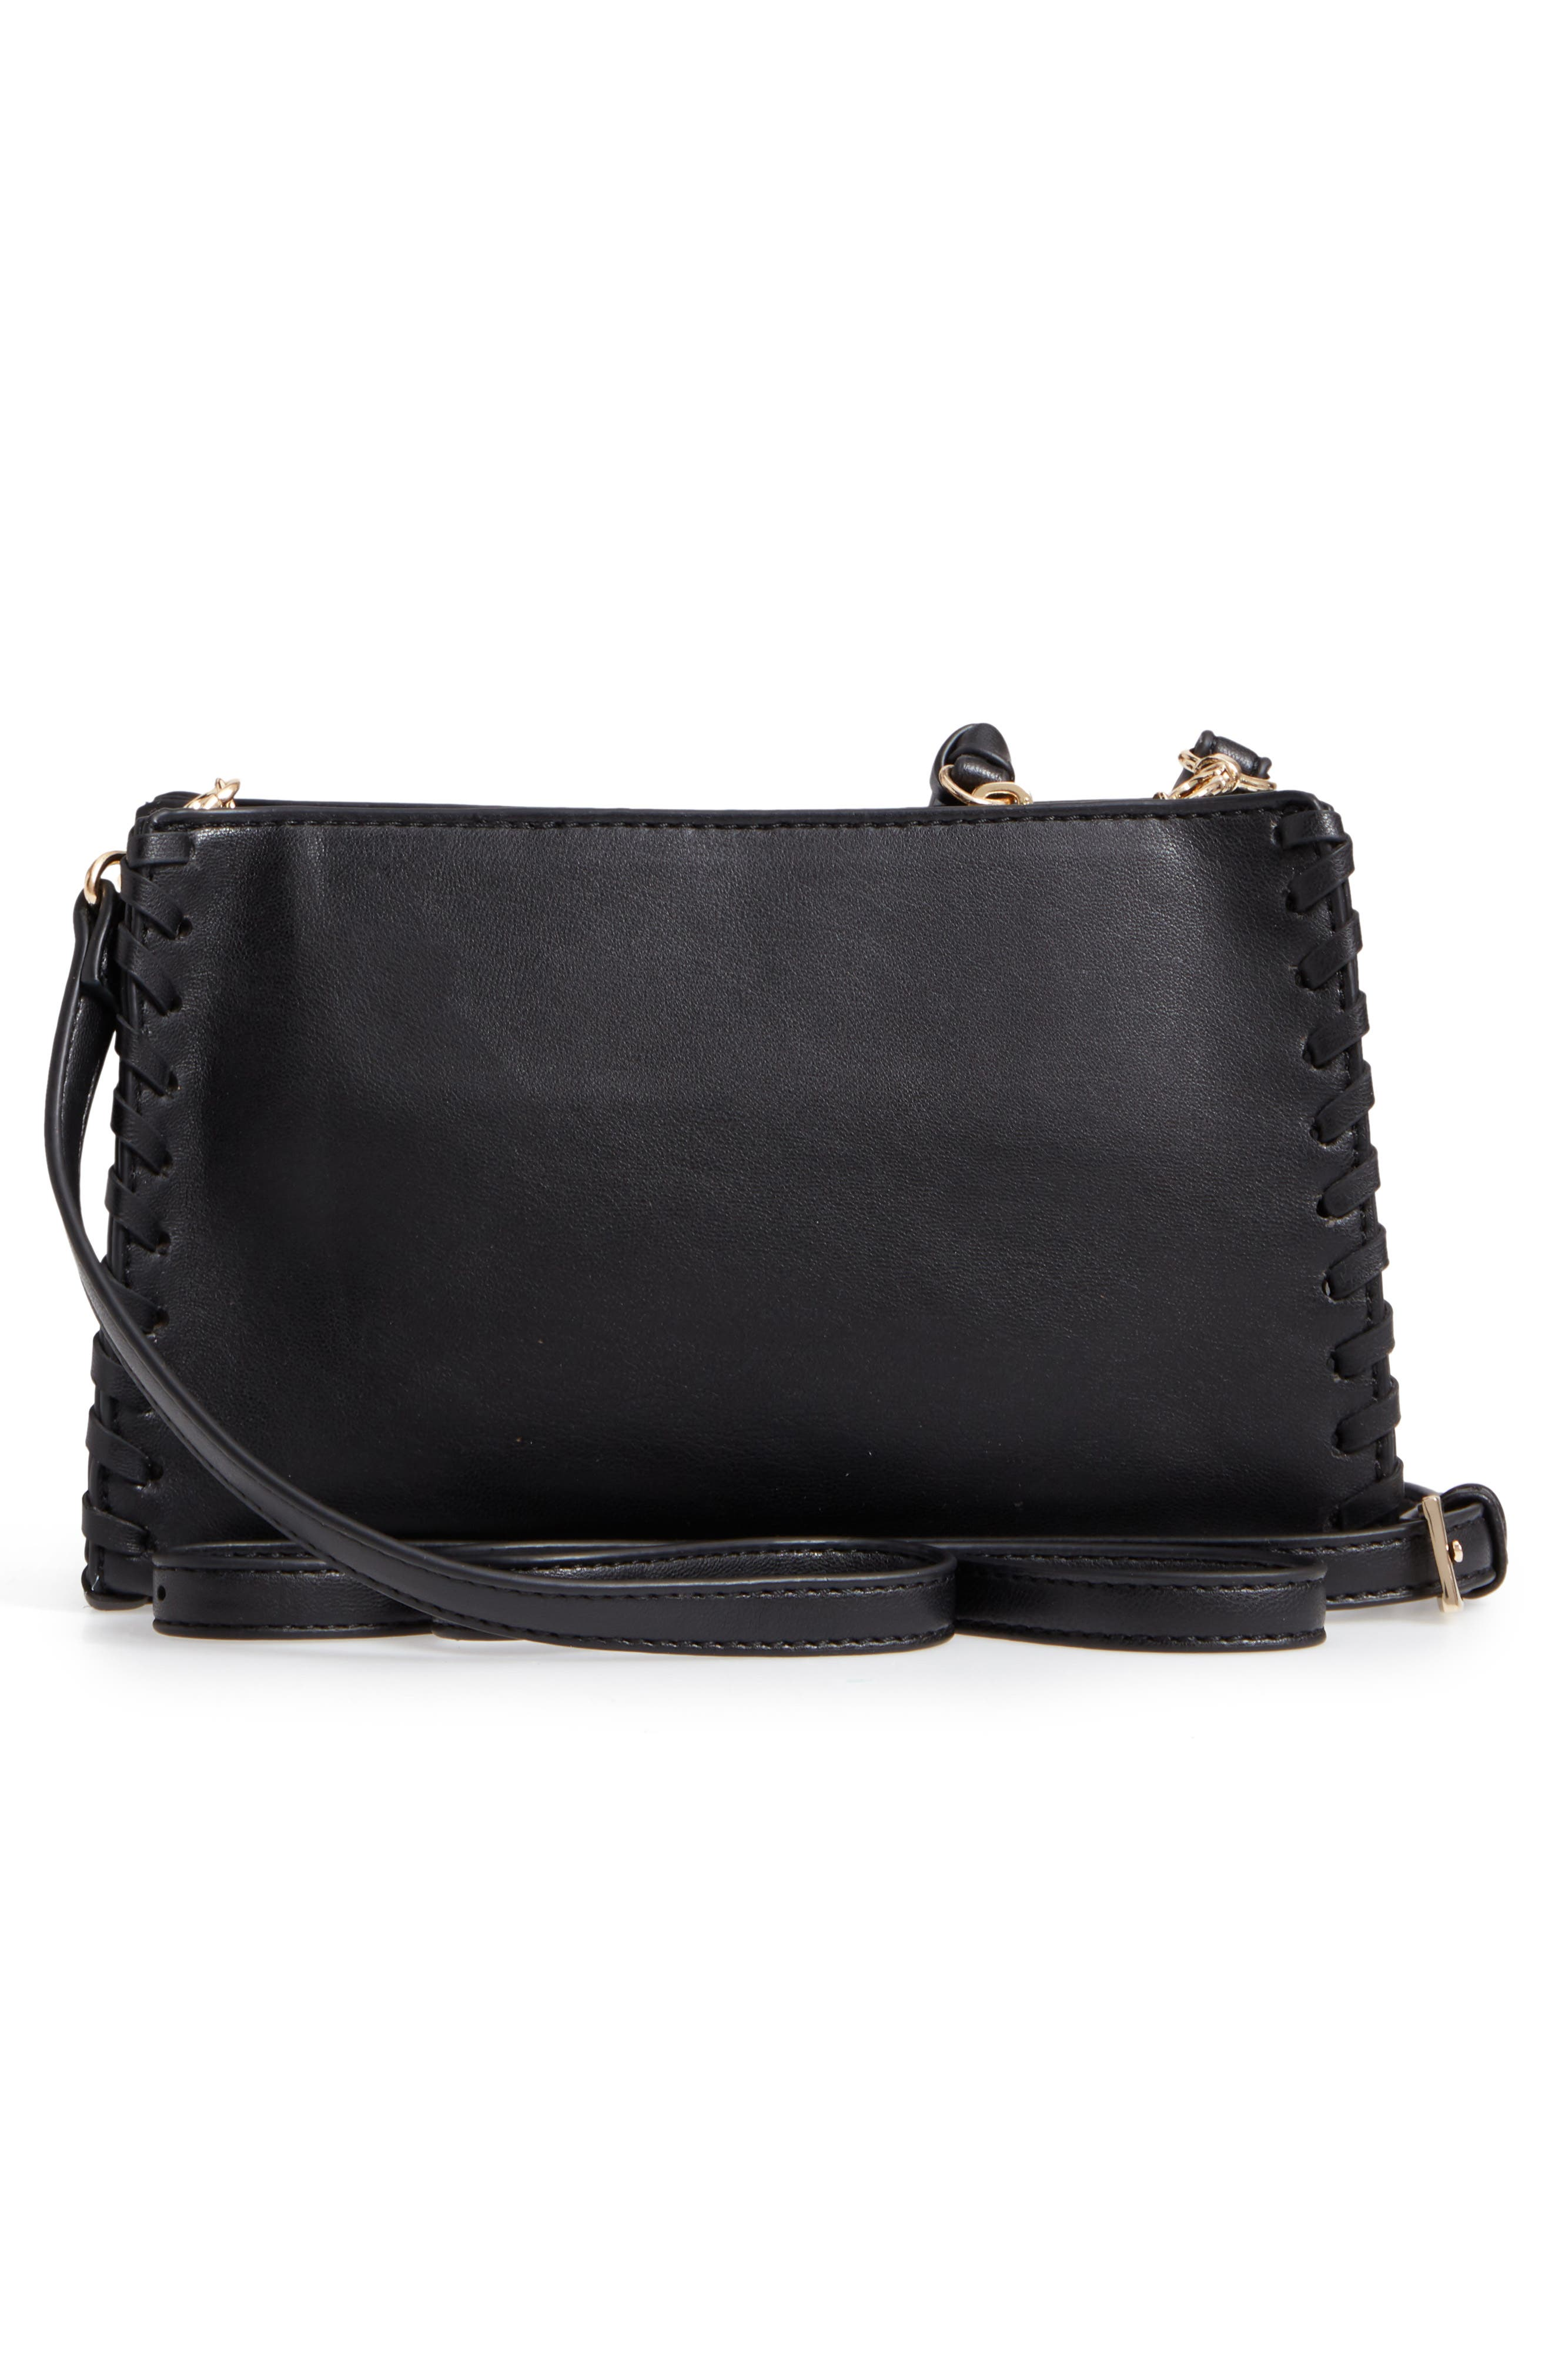 Cadence Whipstitch Faux Leather Crossbody Bag,                             Alternate thumbnail 3, color,                             001